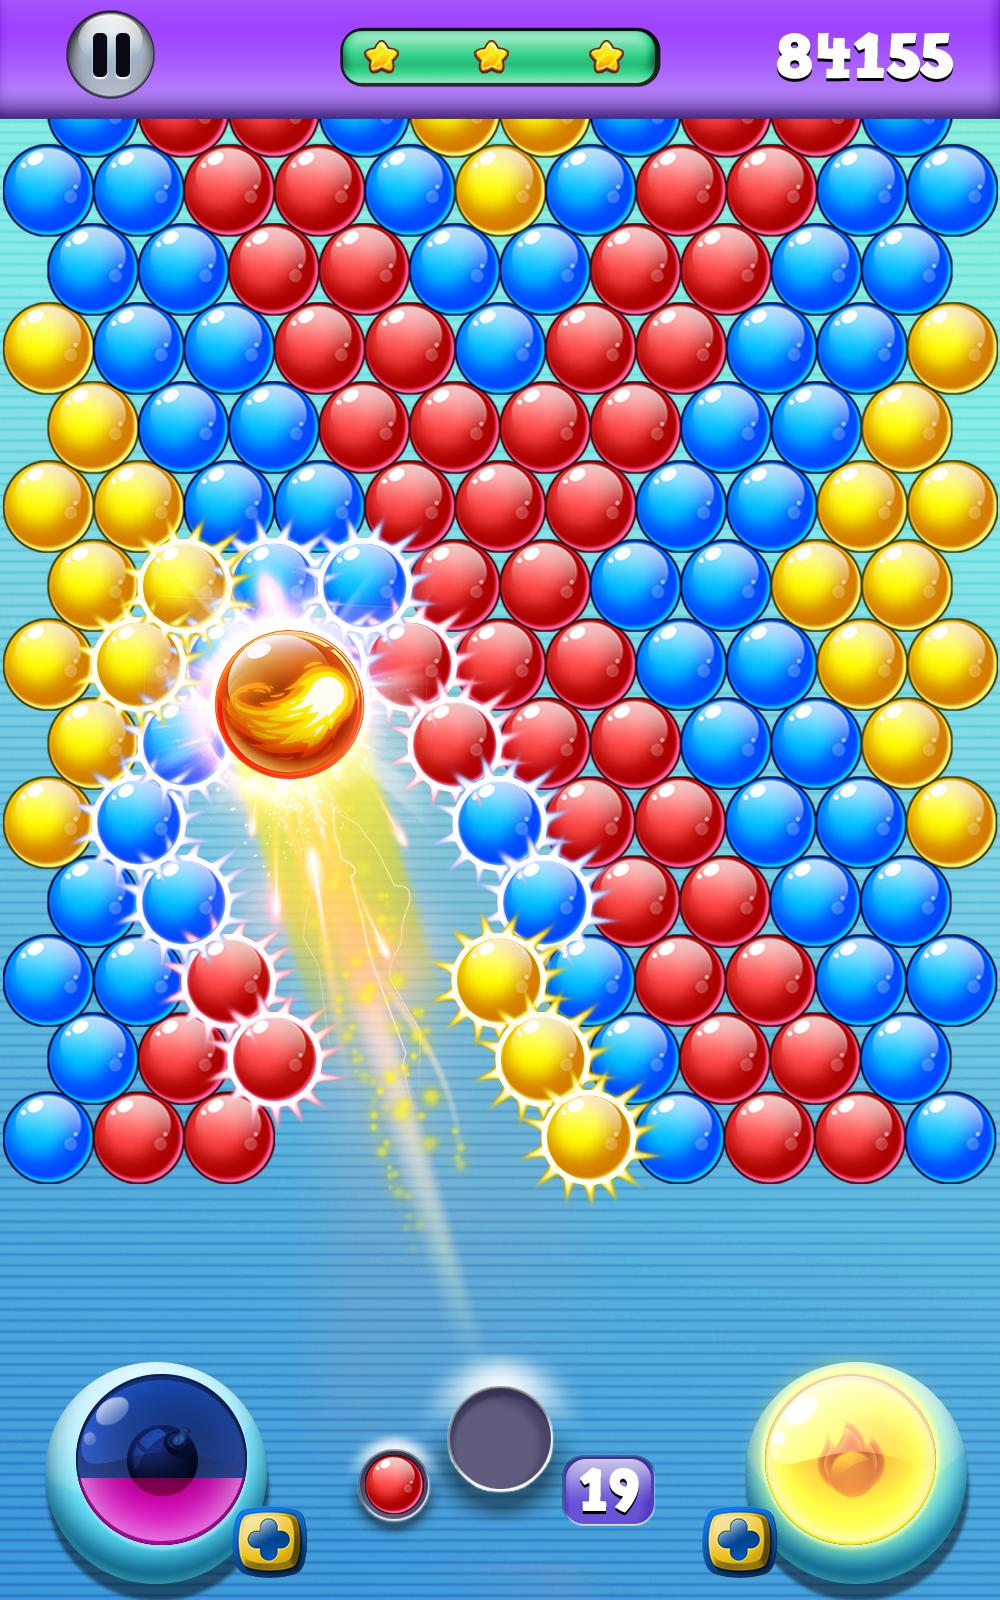 Offline Bubbles for Android - APK Download